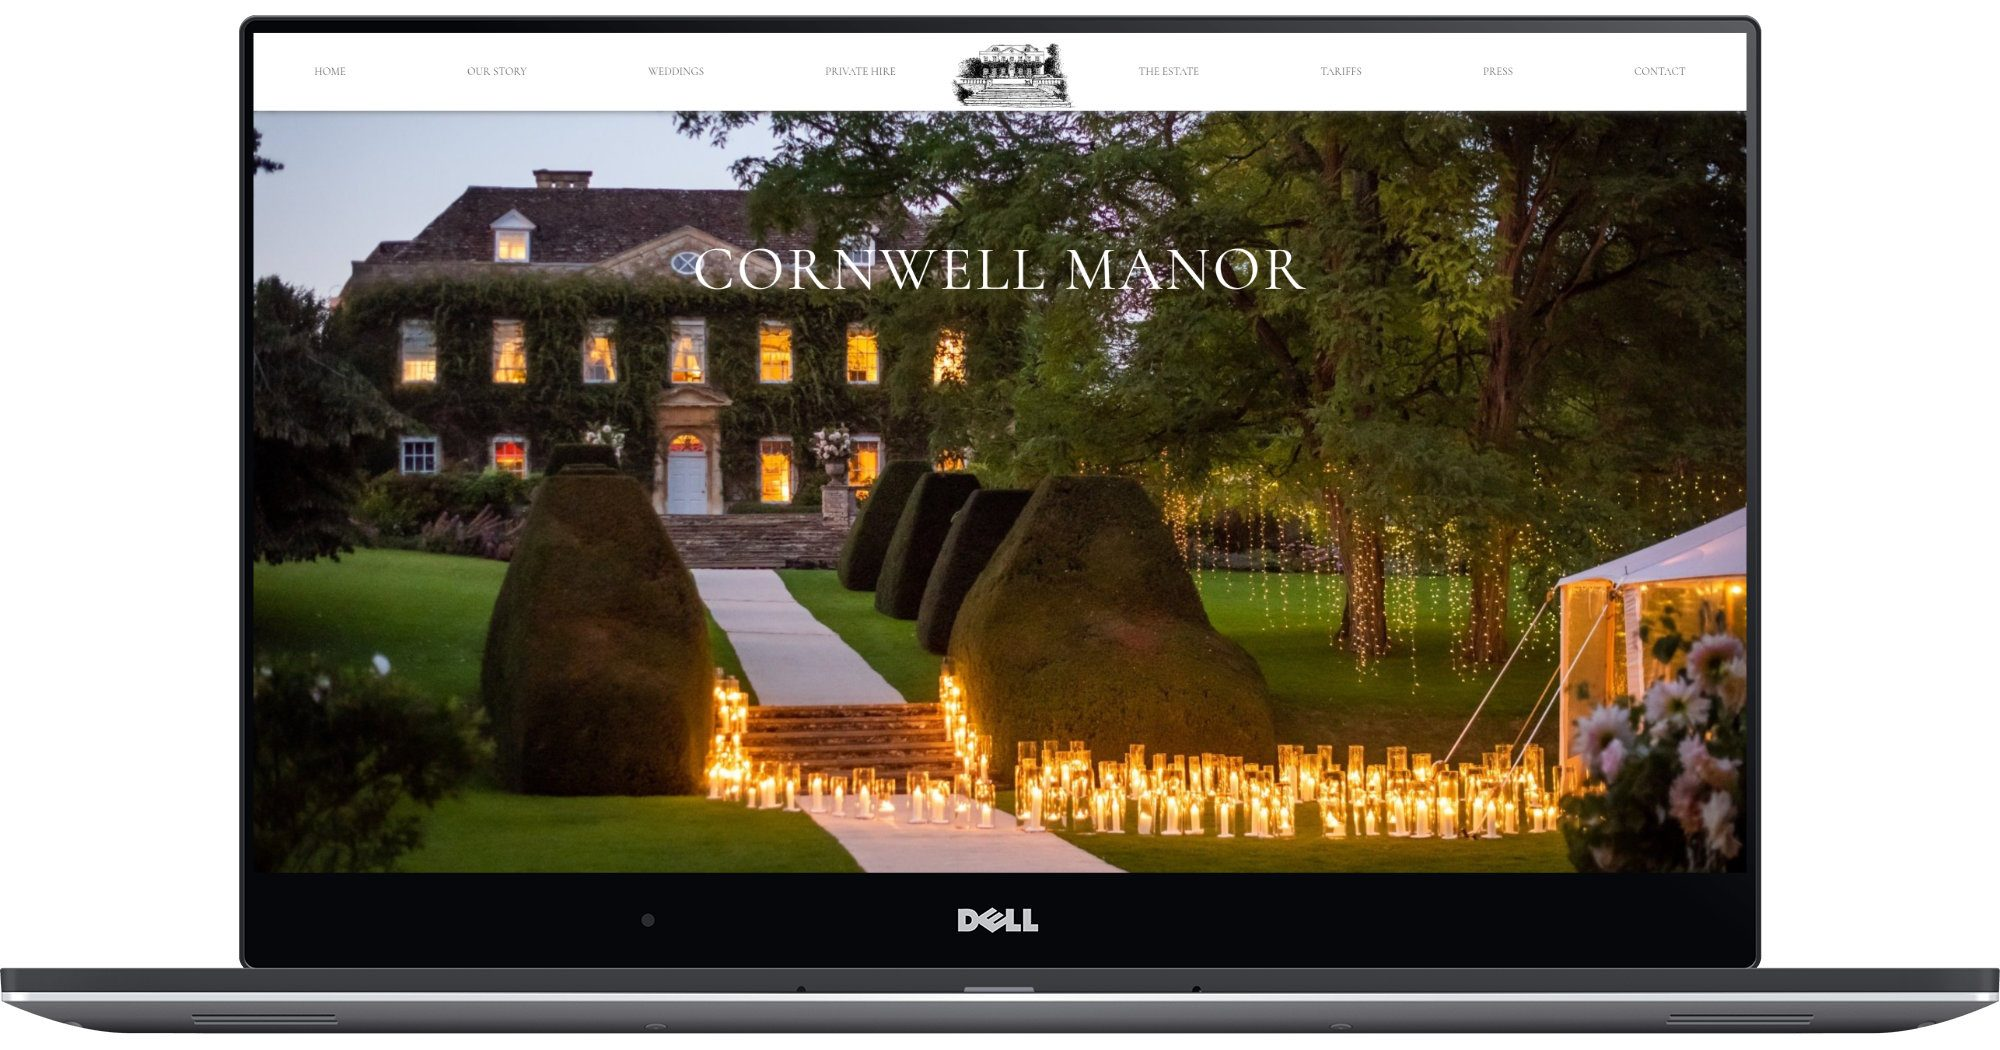 Cornwell Manor Laptop Screenshot